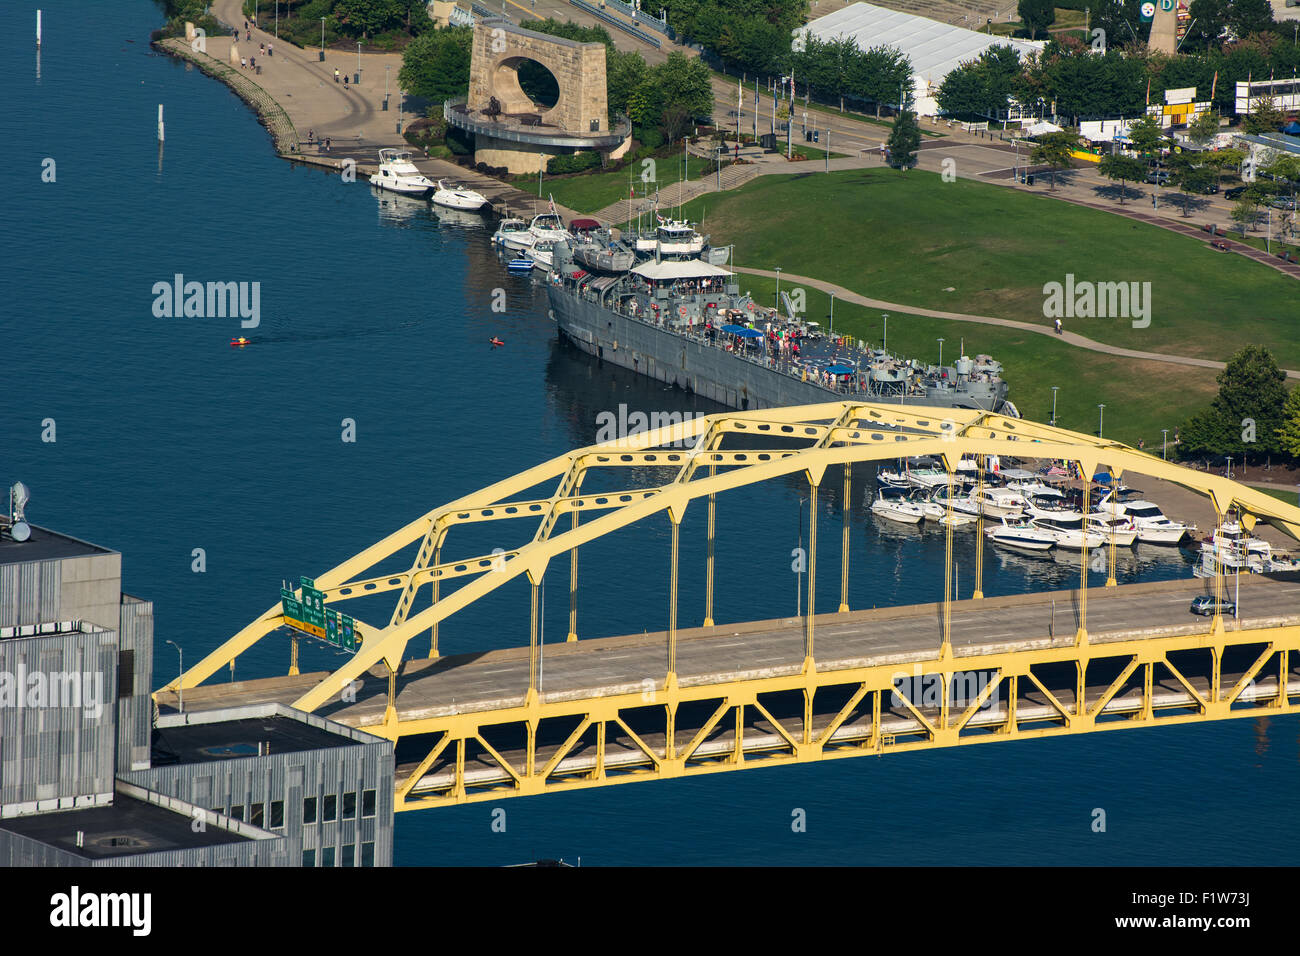 An aerial view of the Fort Duquesne bridge, crossing the Allegheny River, and the North Shore of Pittsburgh, Pennsylvania. - Stock Image